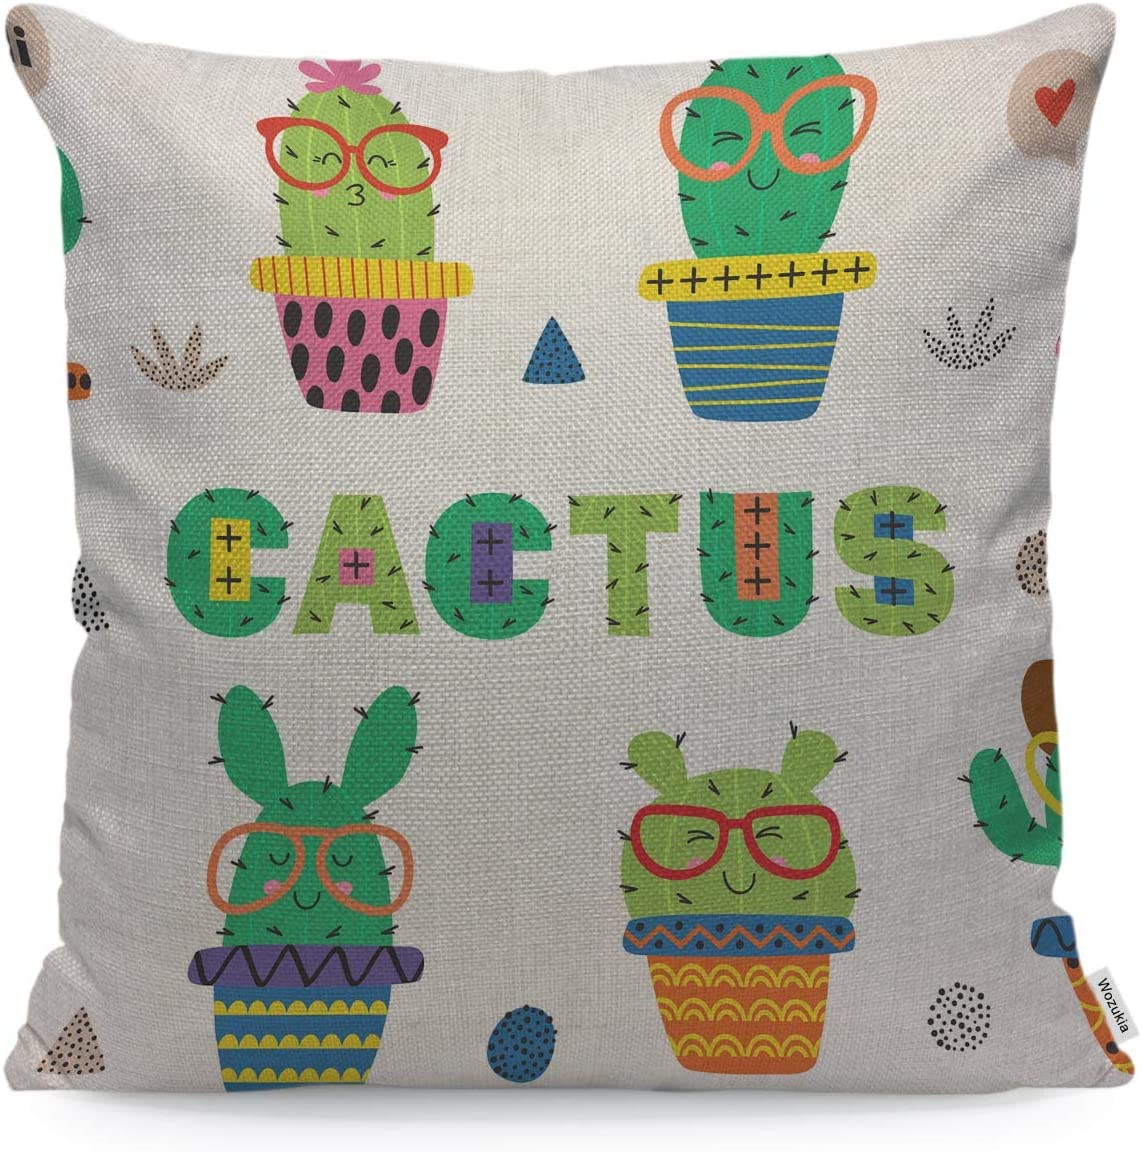 Wozukia Funny Cactus Throw Pillow Covers in Glasses Geometric Shapes Decoration Cute Colorful Decorative Pillow Cases Home Decor Square 16x16 Inches Pillowcases